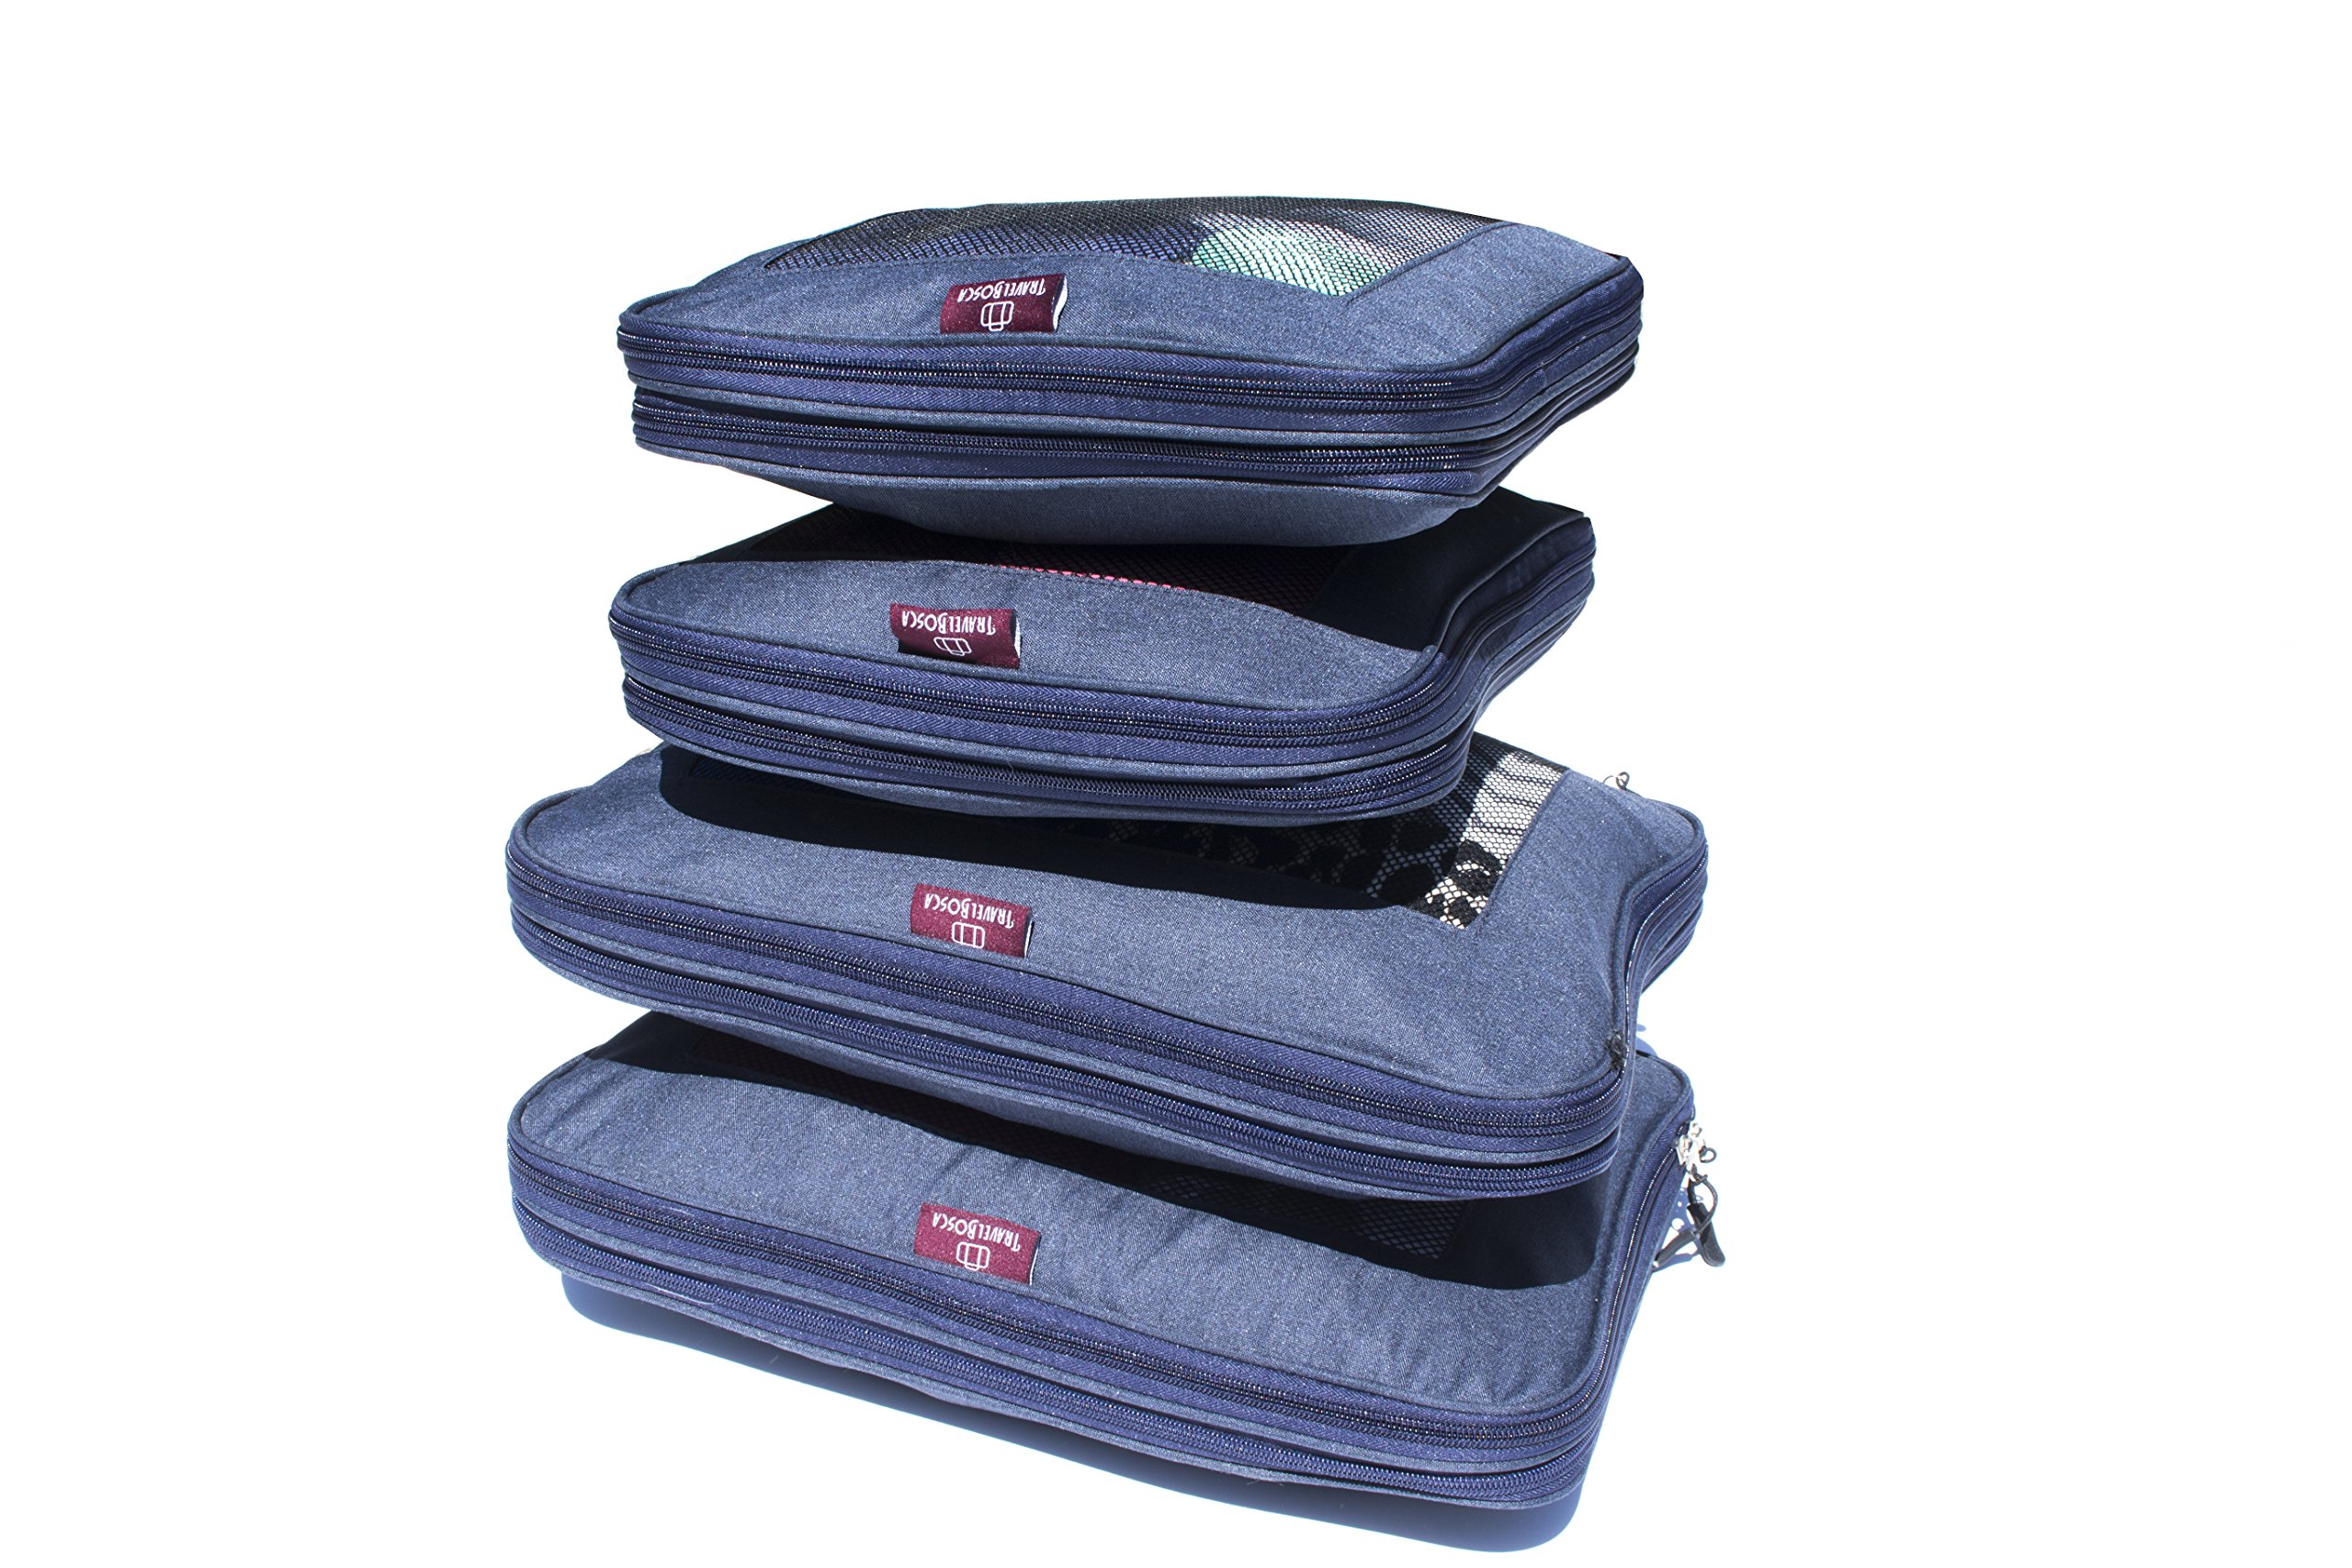 Color Grey Set of 6 LeanTravel Compression Packing Cubes Luggage Organizers for Travel with Double Zipper